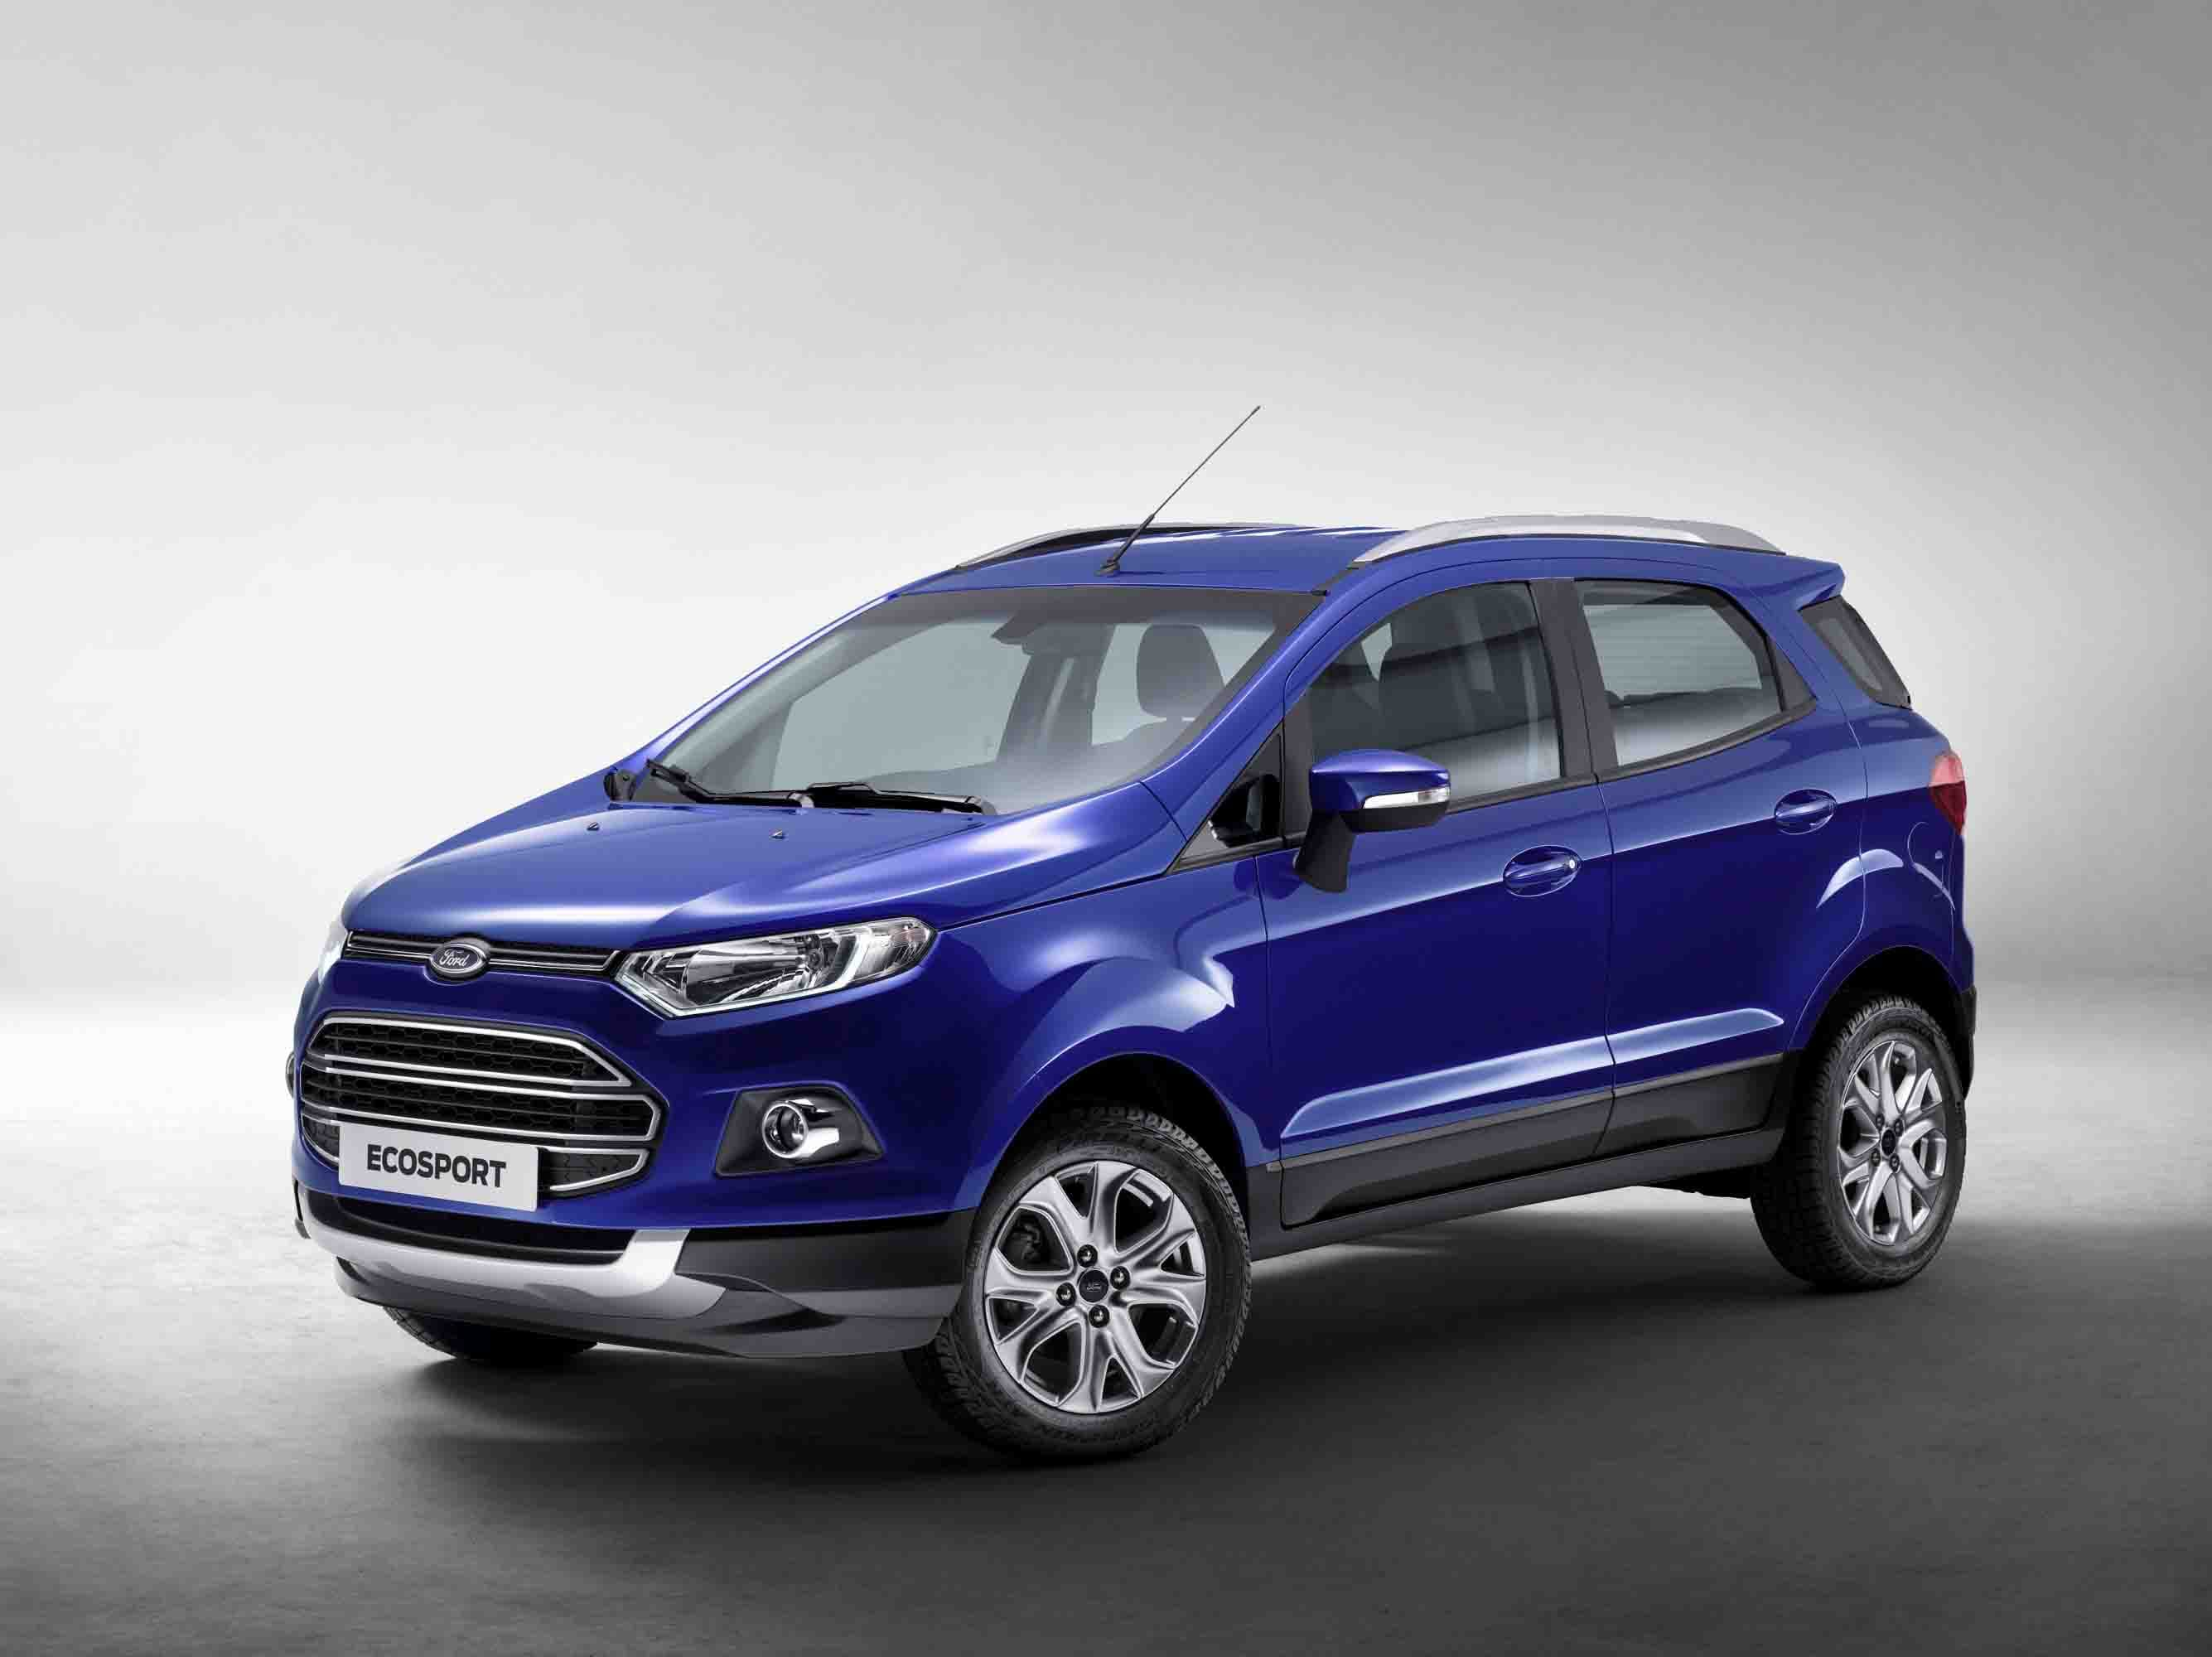 ford ecosport india price review images ford cars. Black Bedroom Furniture Sets. Home Design Ideas